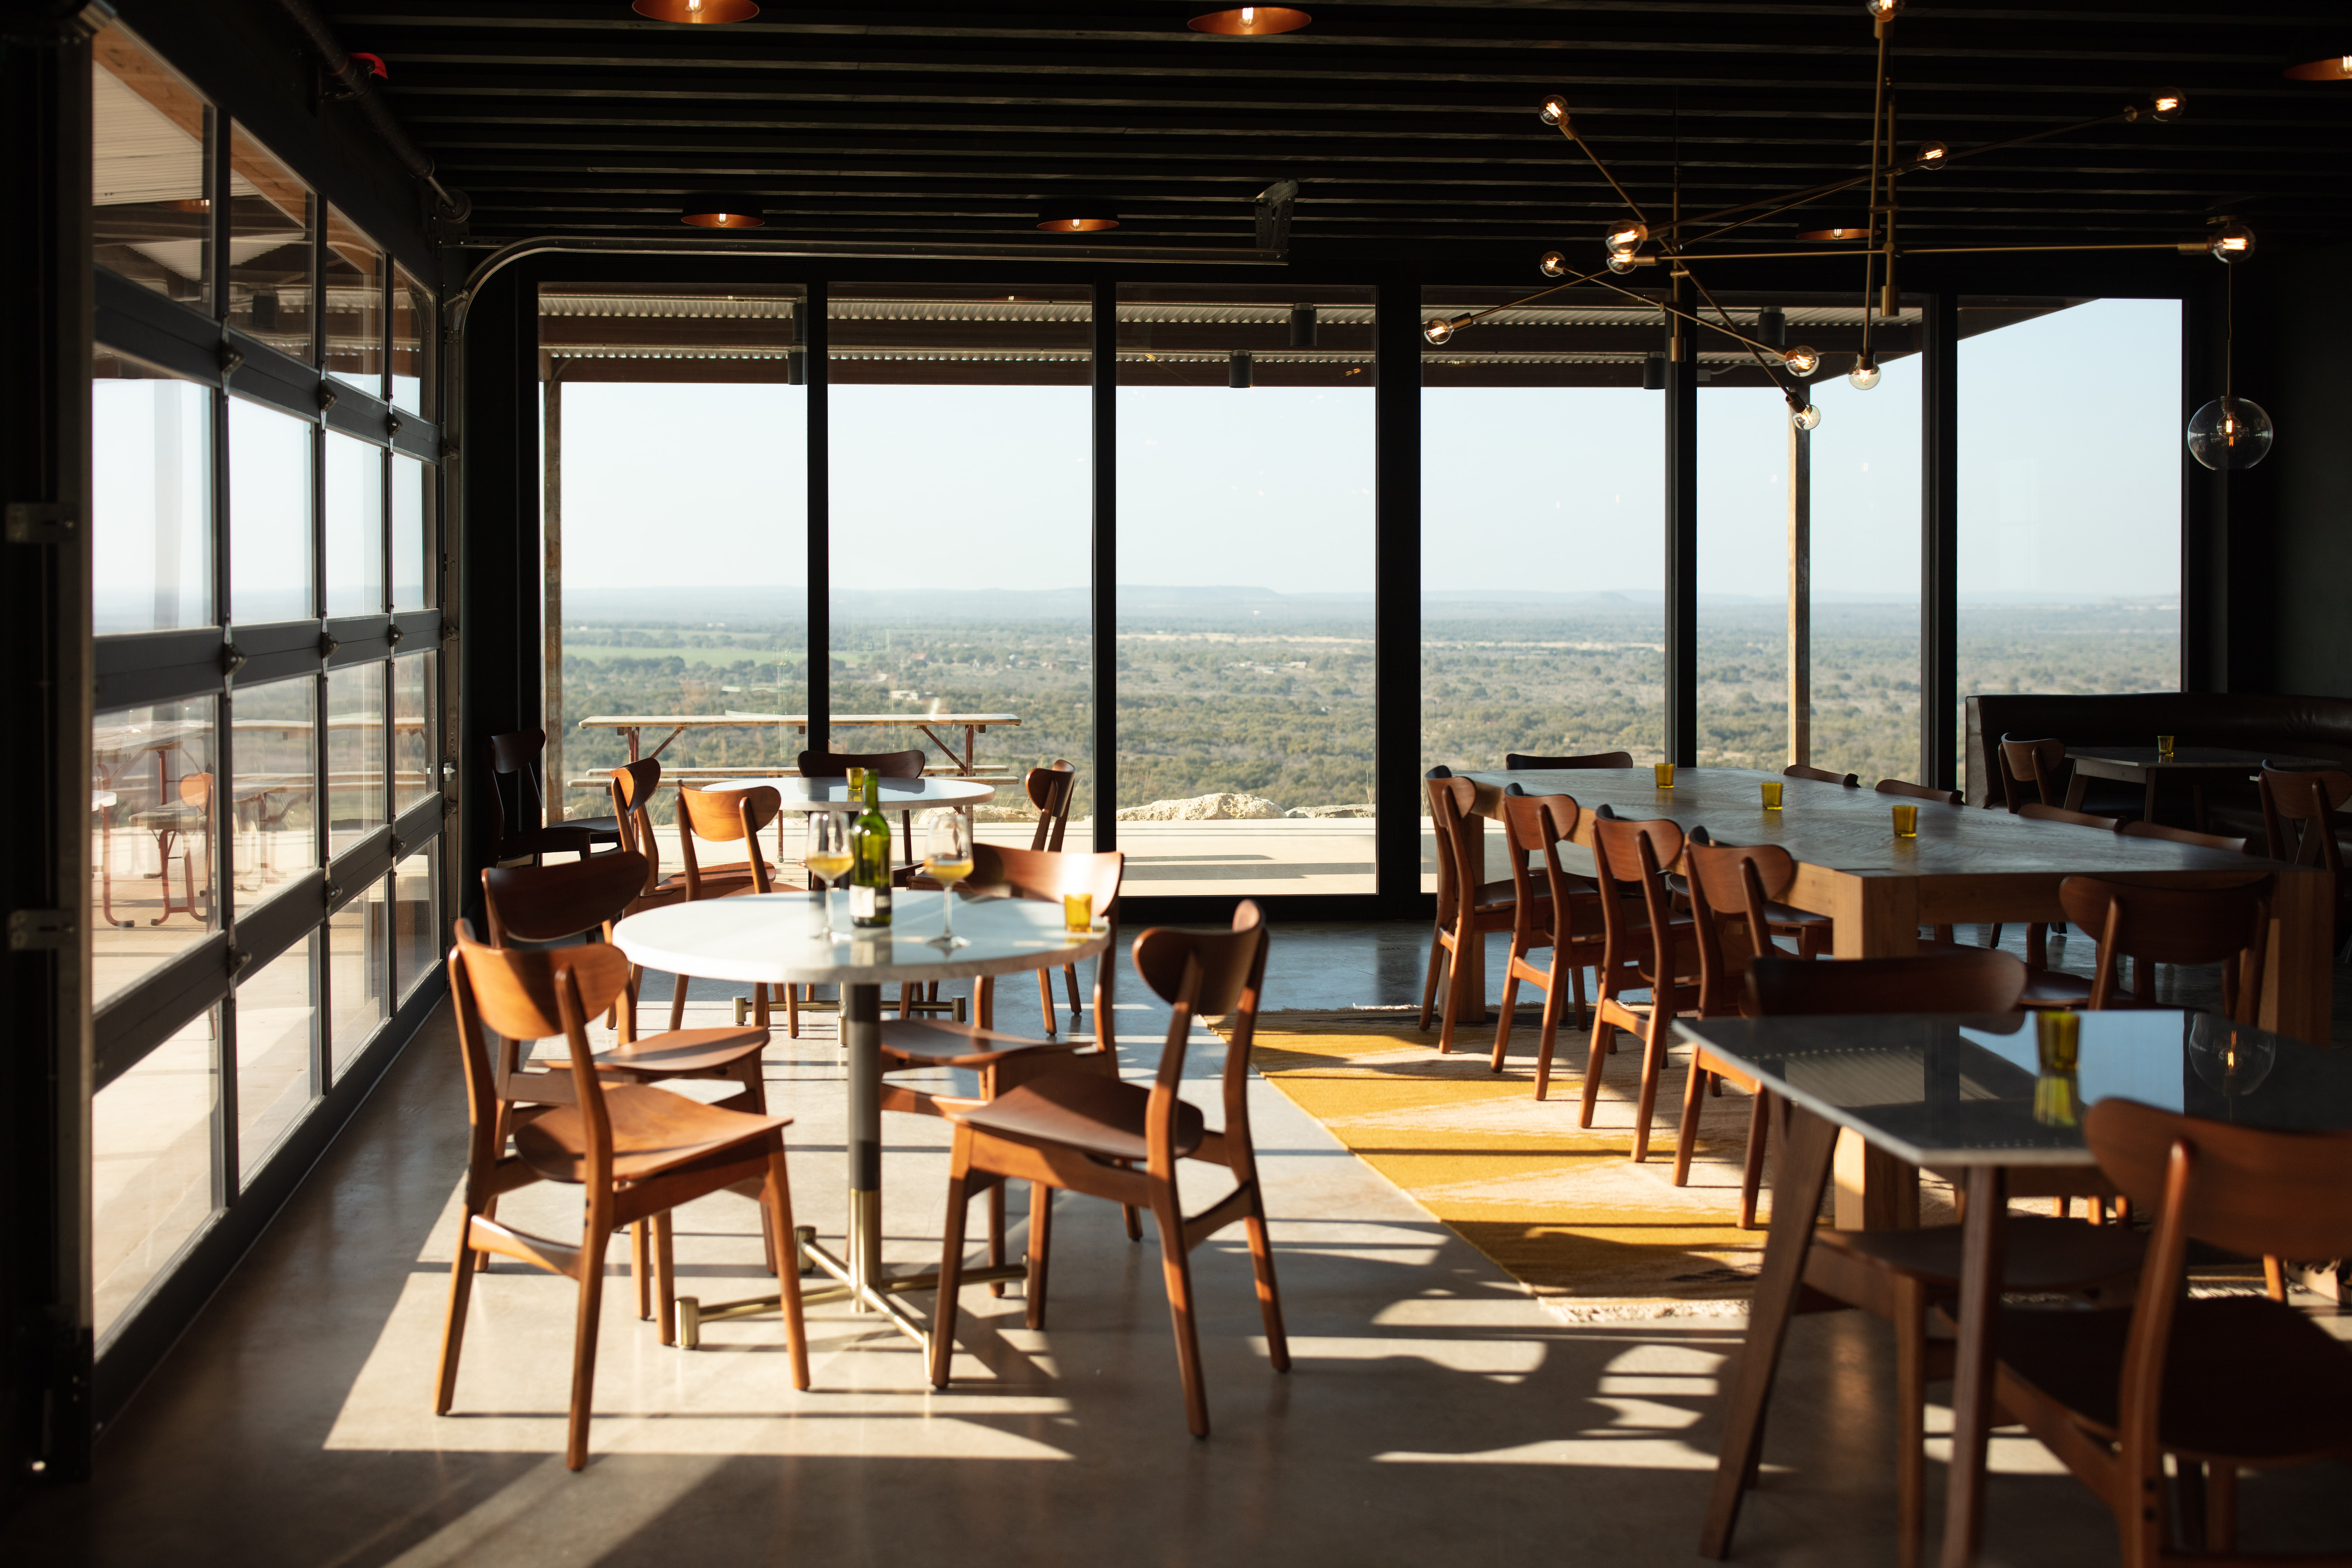 A restaurant dining room with a circular table and a long table with chairs surrounded by tall windows facing a sprawling landscape.